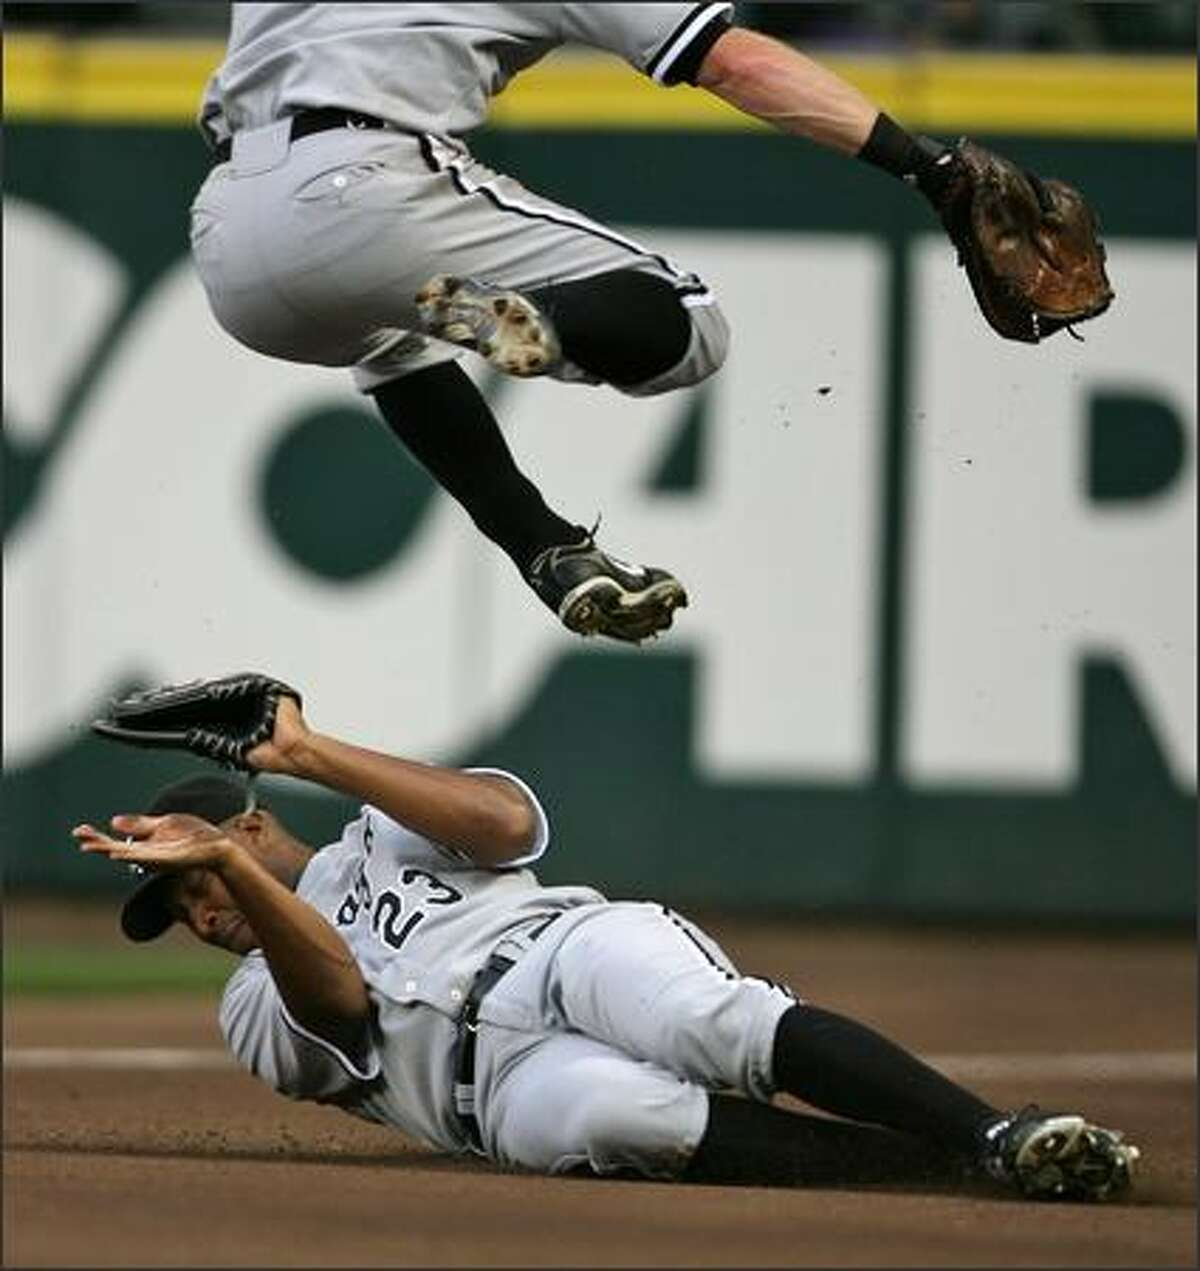 Chicago White Sox Jermaine Dye (23) shields himself as teammate Darin Erstad (17) leaps overhead as they both chase a foul ball hit by Seattle Mariners Yuniesky Betancourt into the right field warning track during second inning action at Safeco Field in Seattle, Wash., Friday August 17, 2007.